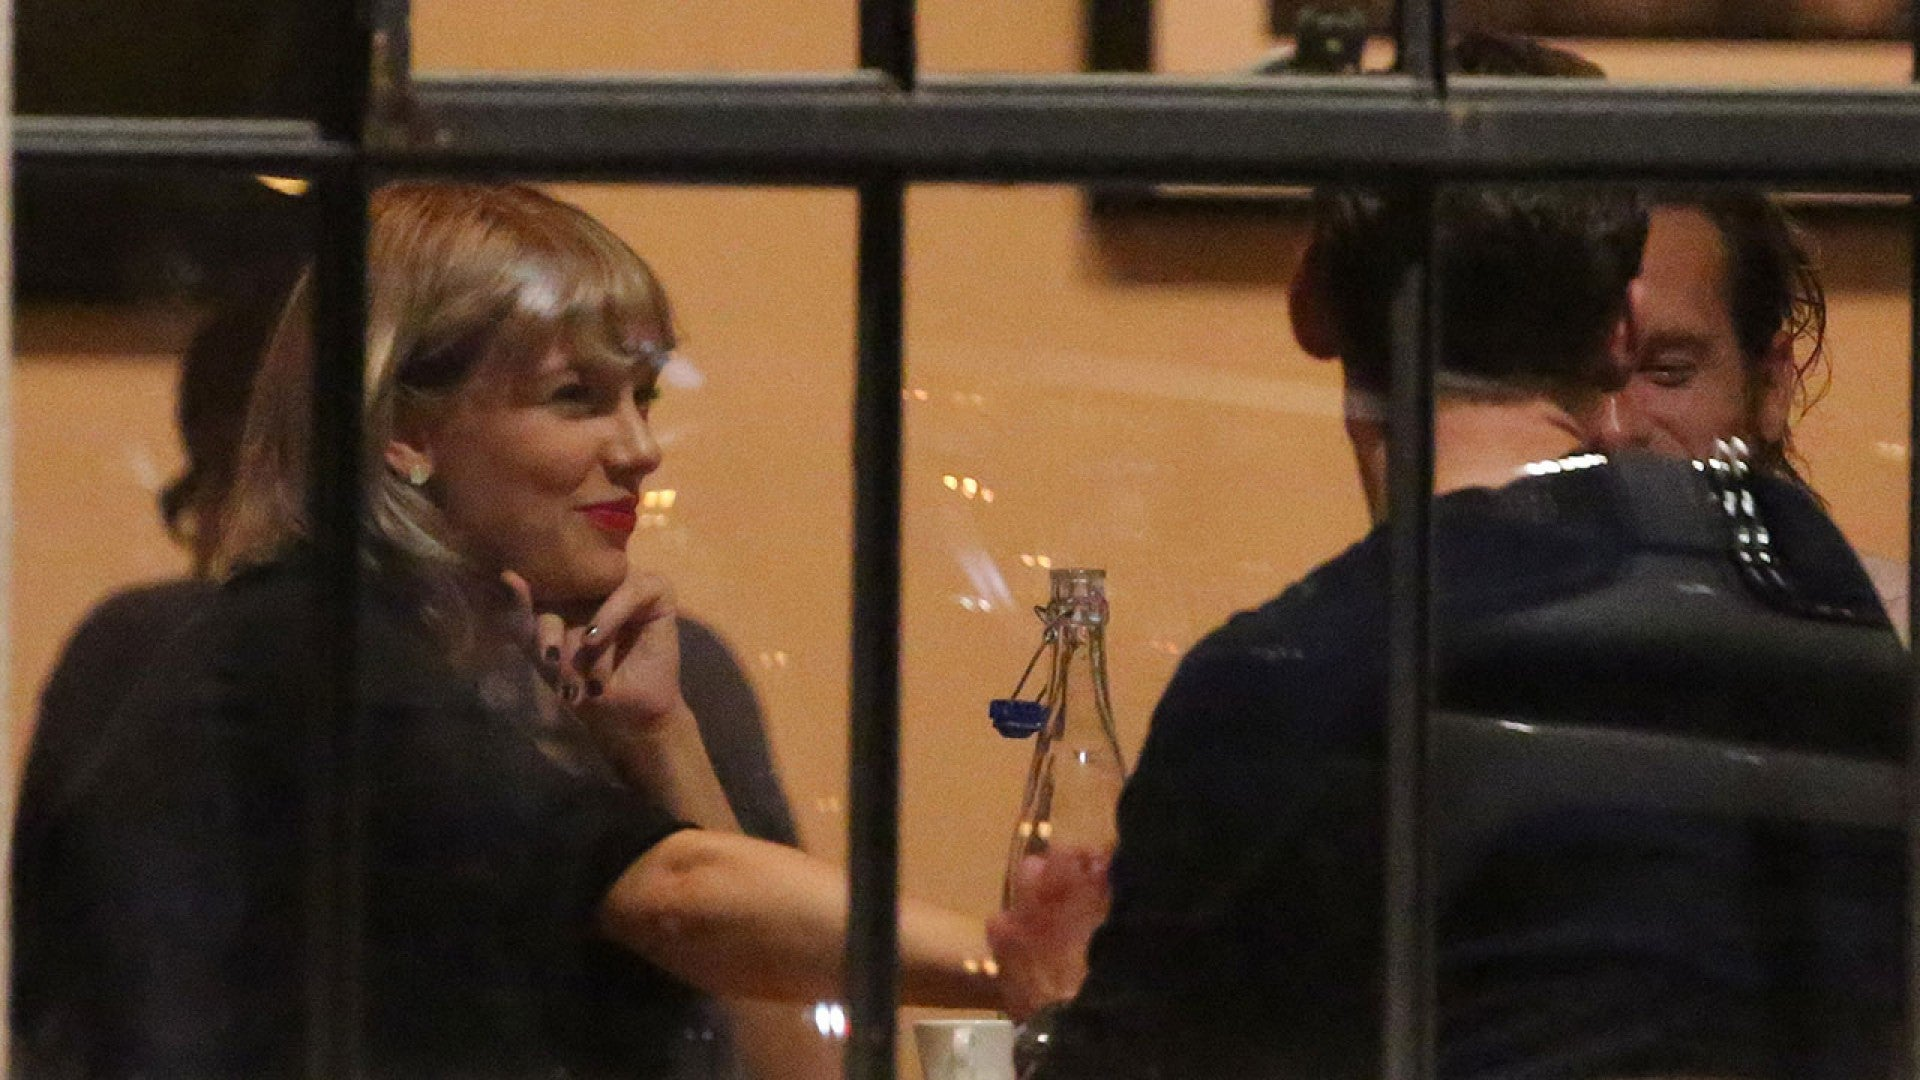 Taylor Swift Introduces Tom Hiddleston To Her Parents During Romantic Nashville Getaway Entertainment Tonight